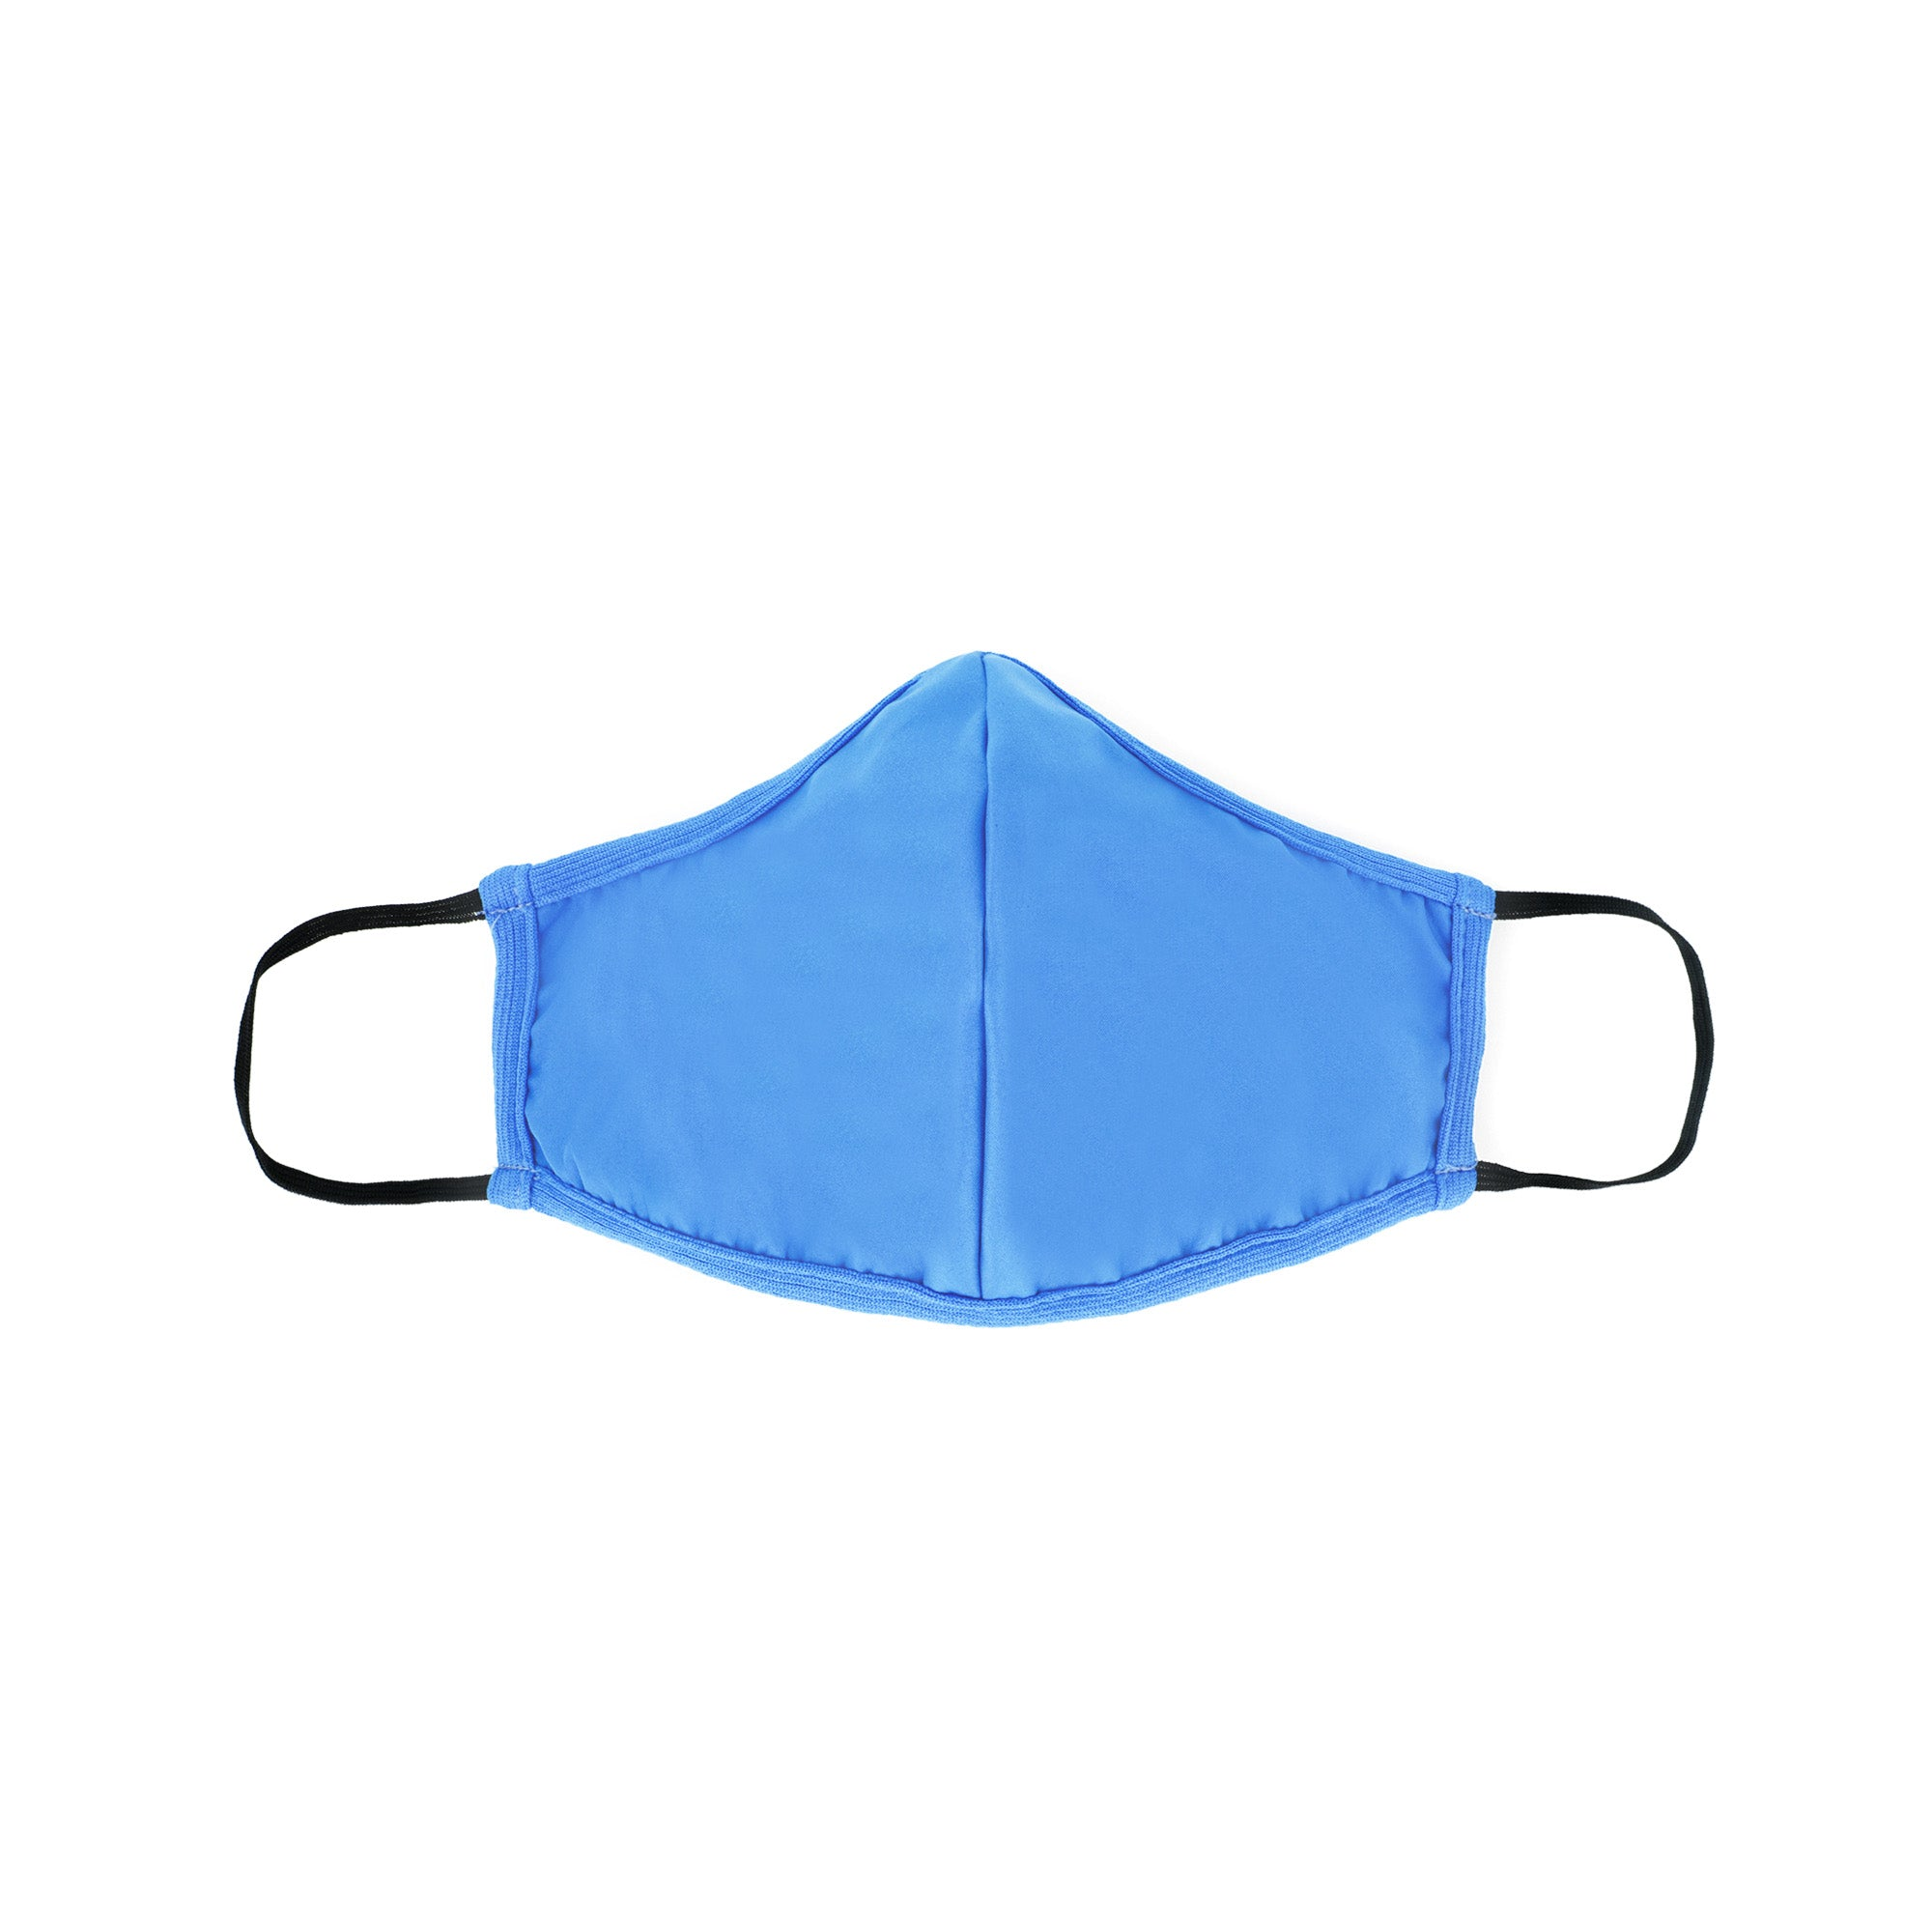 Masks for Change Moisture Resistant Triple Layers of Fabric moisture resistant anti microbial light and breathable sky blue